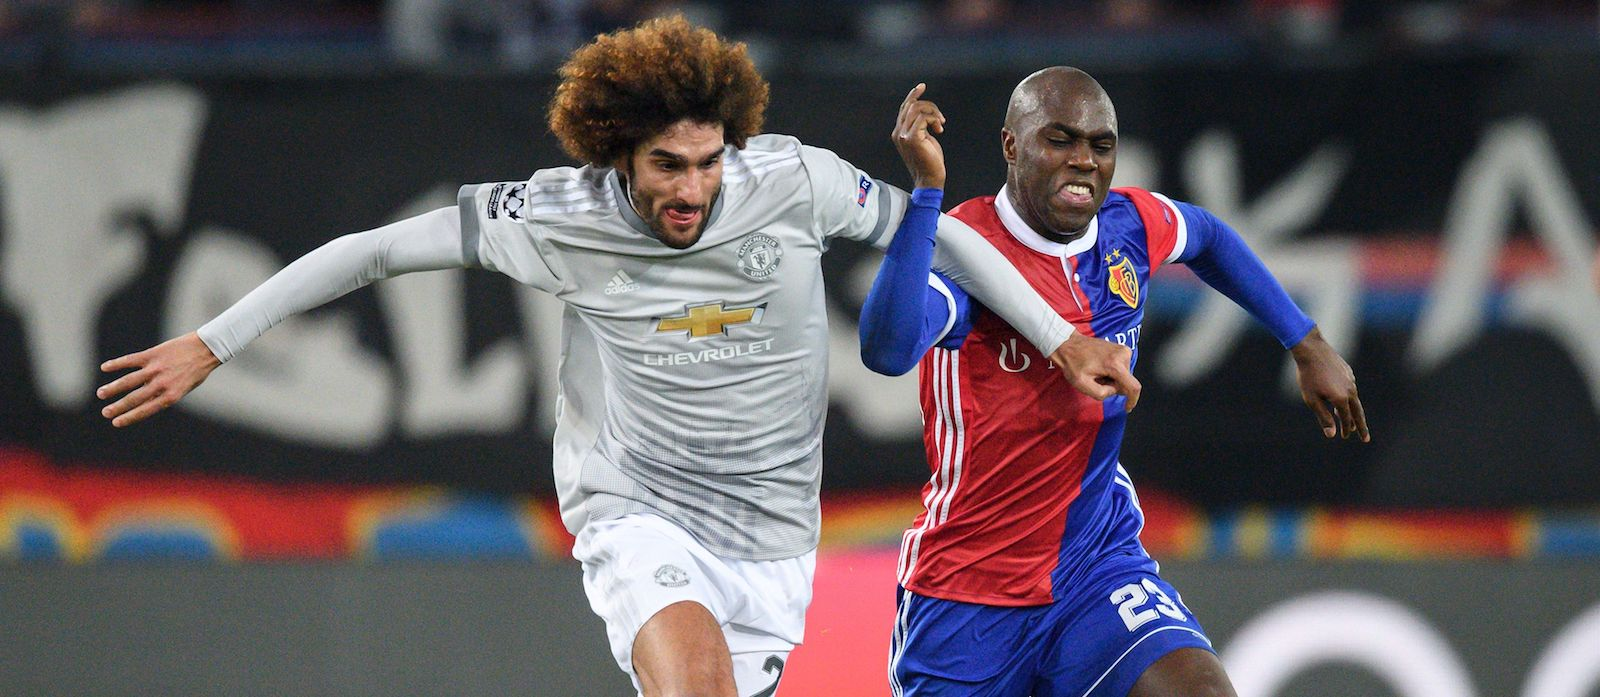 Marouane Fellaini tells Jose Mourinho he's leaving Manchester United: report